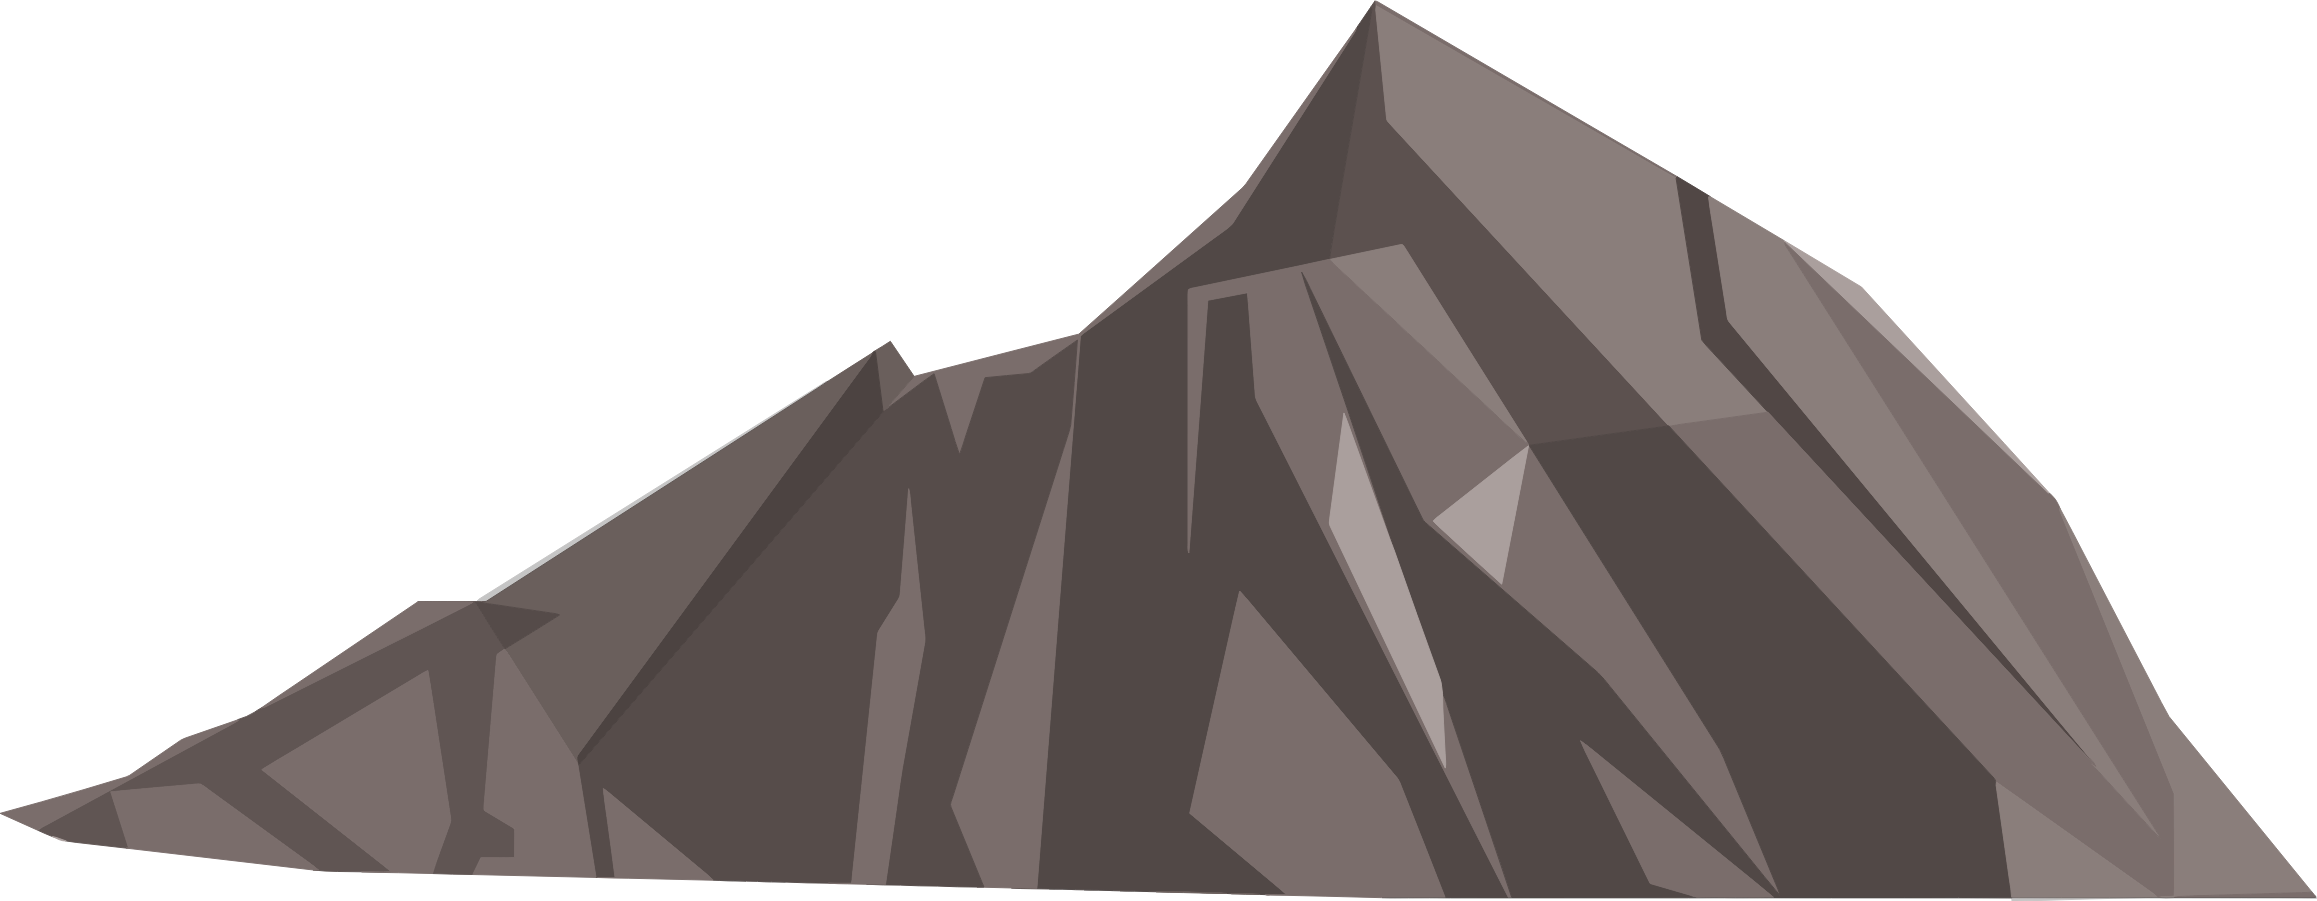 Mountain clipart png. Mountains images free download